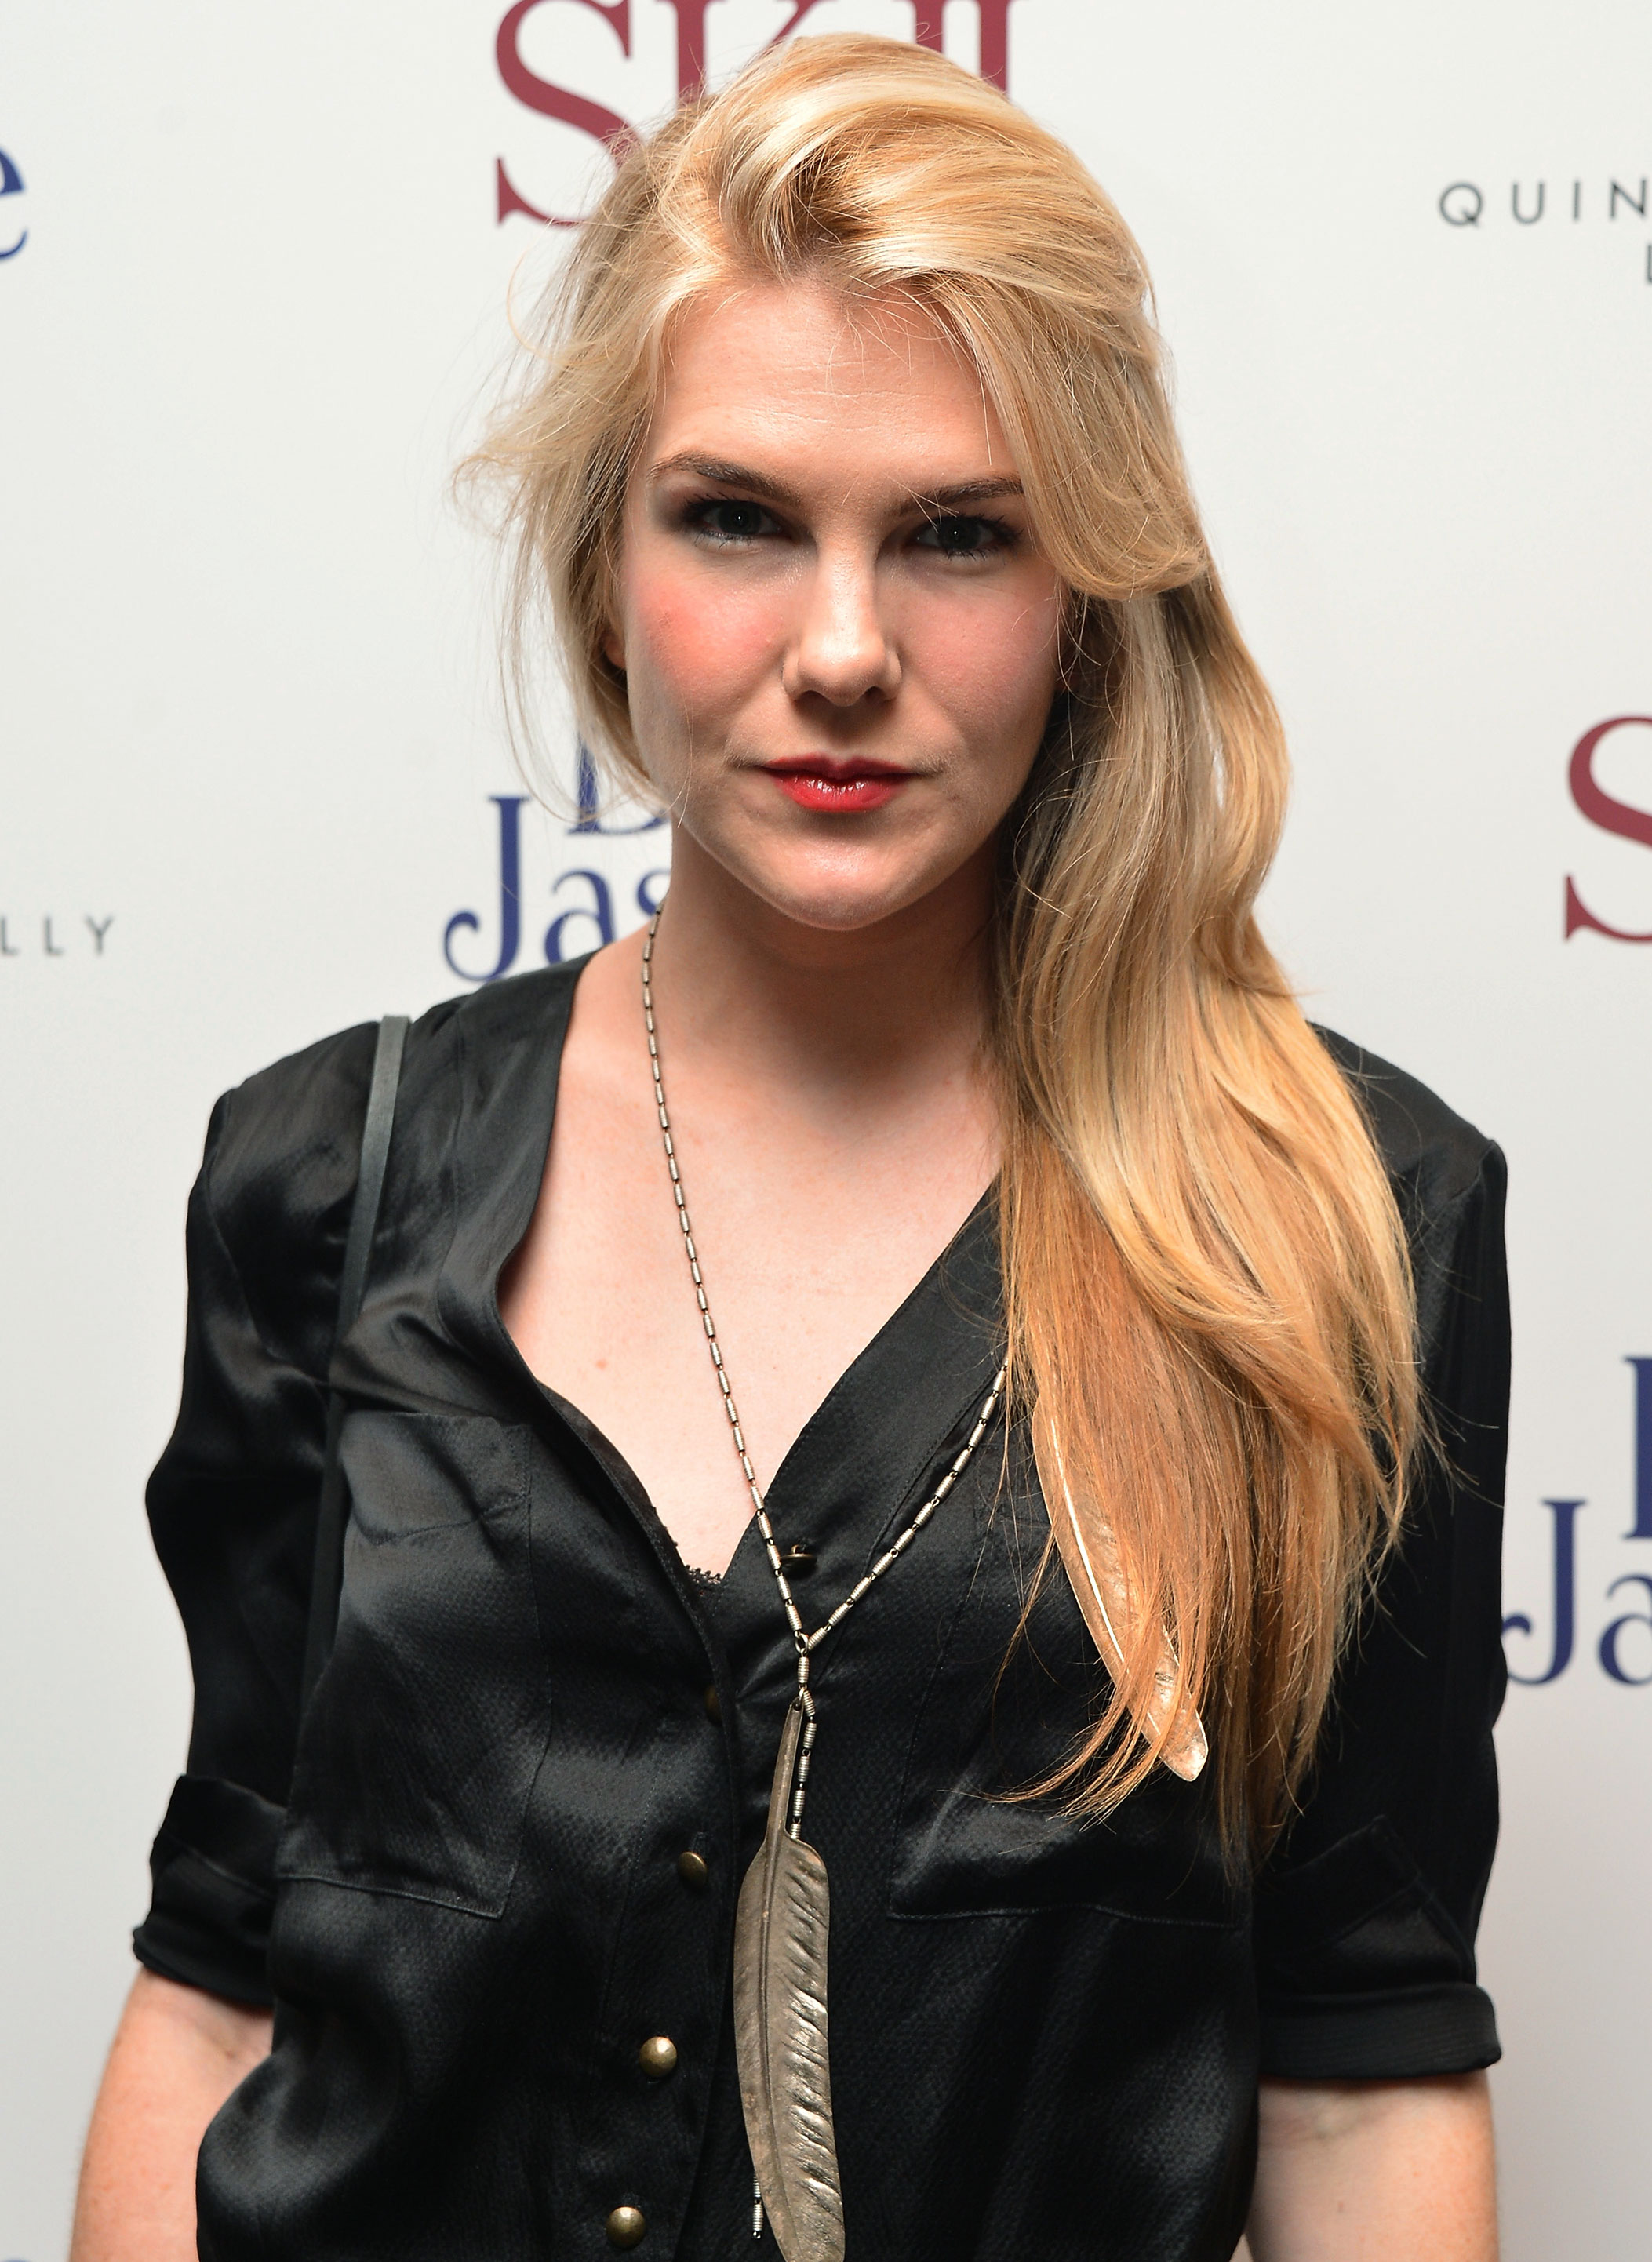 Lily Rabe Joins Mockingjay Vulture